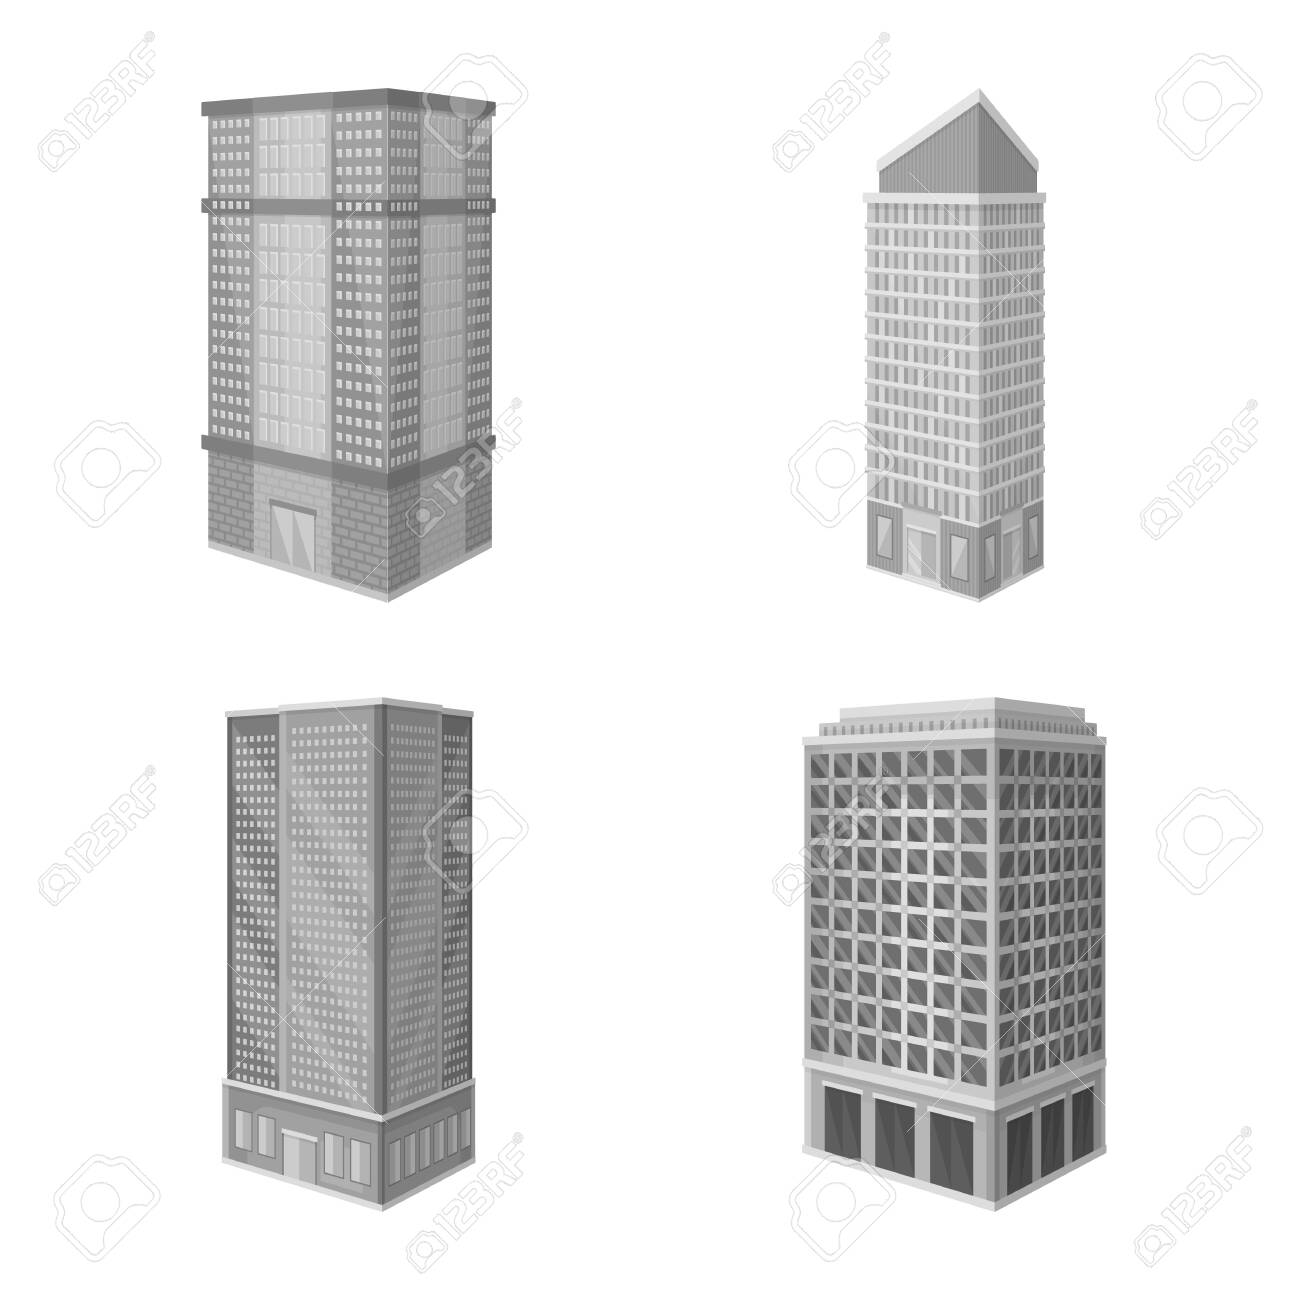 Vector illustration of realty and modern sign. Set of realty and building stock vector illustration. - 143495916